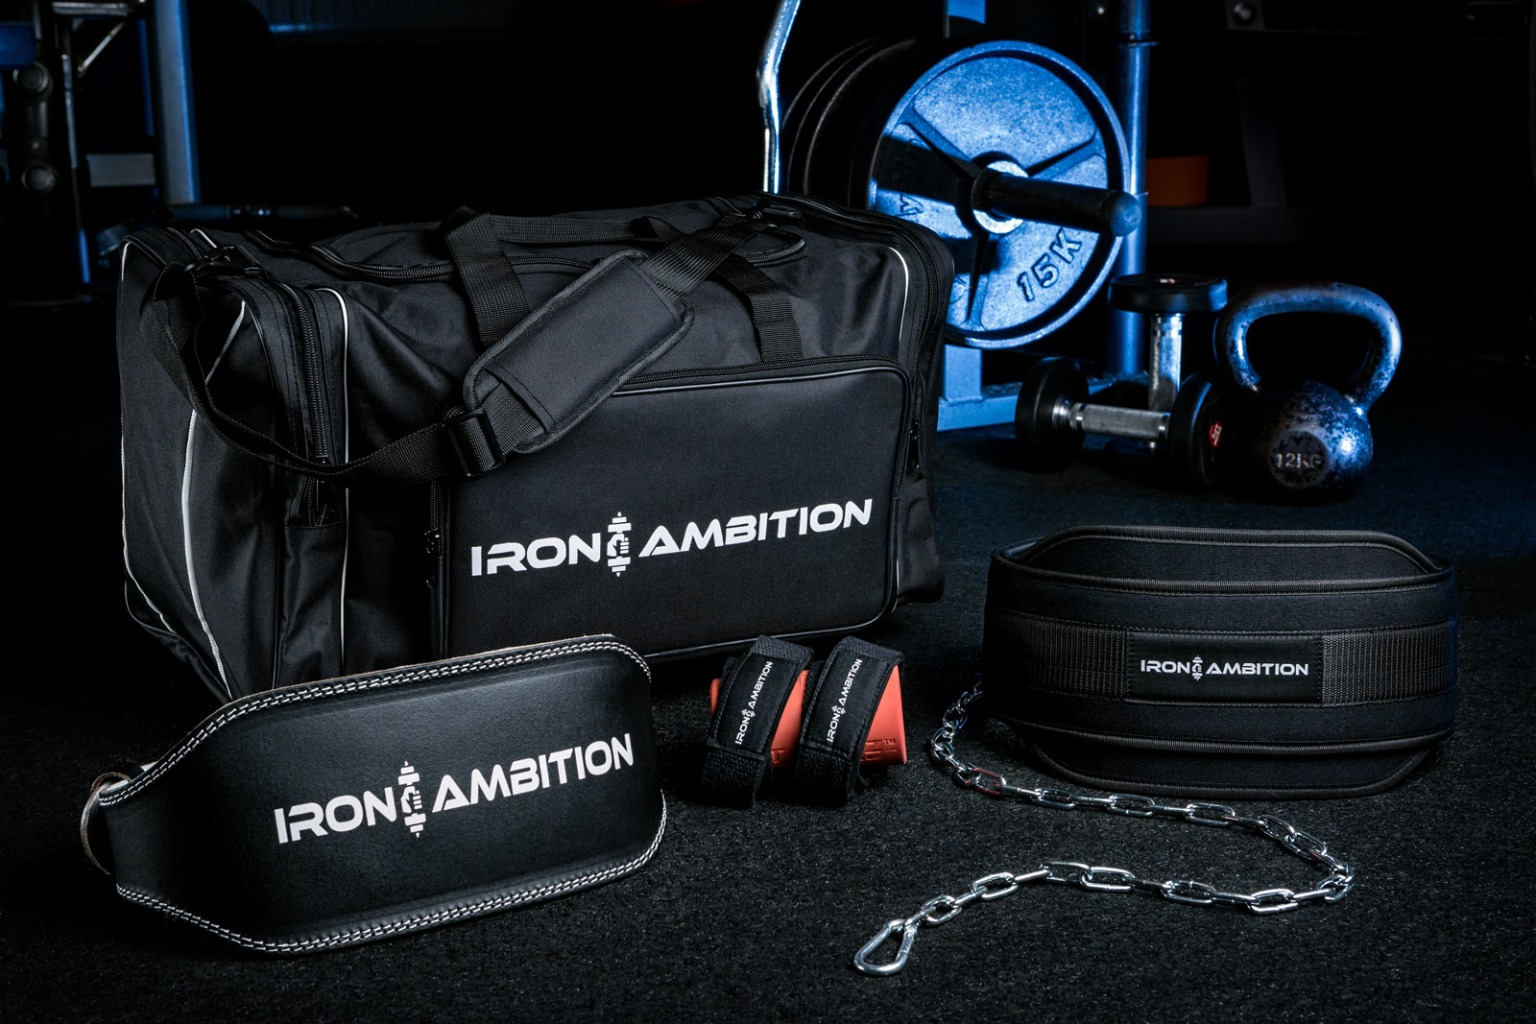 Sports bag and accessories - photography